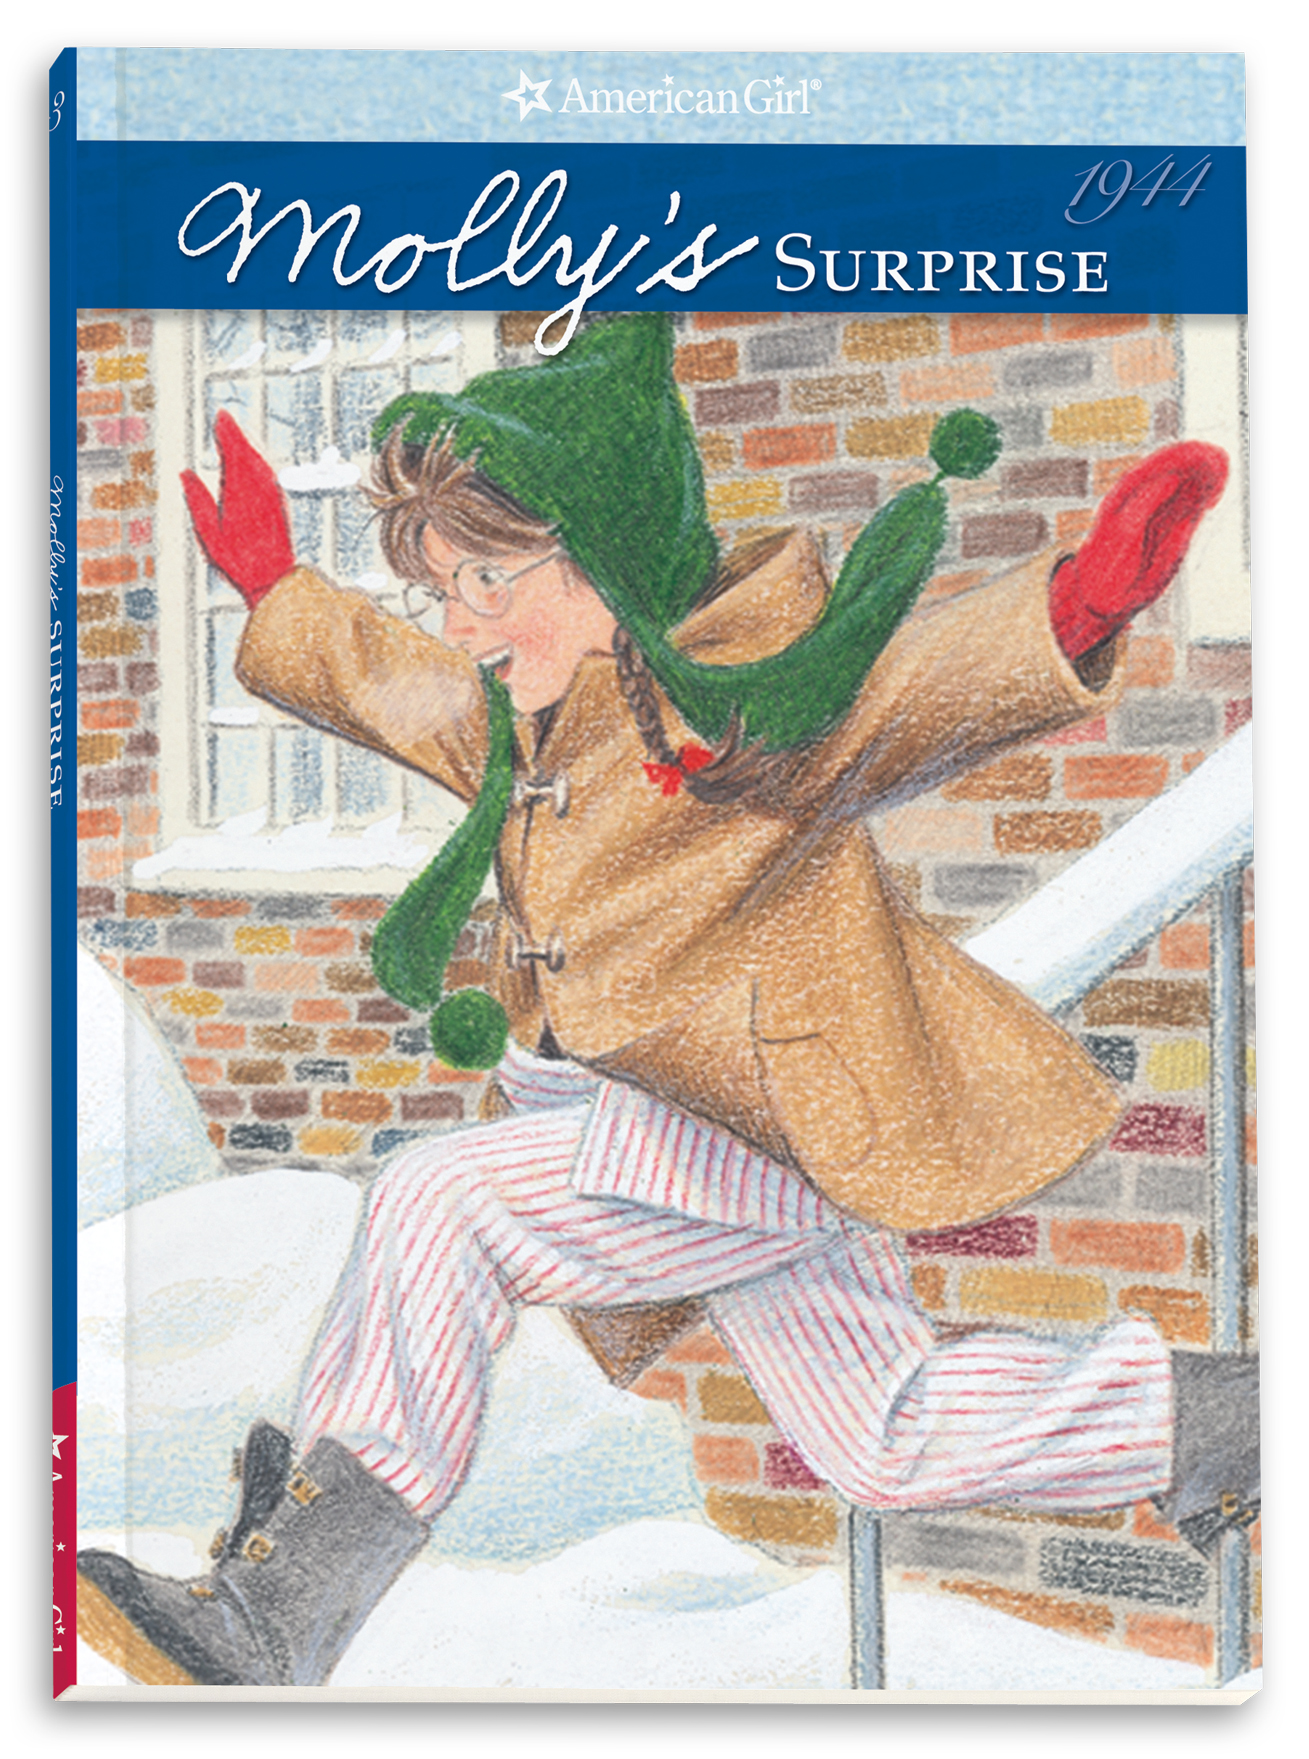 Molly's Surprise